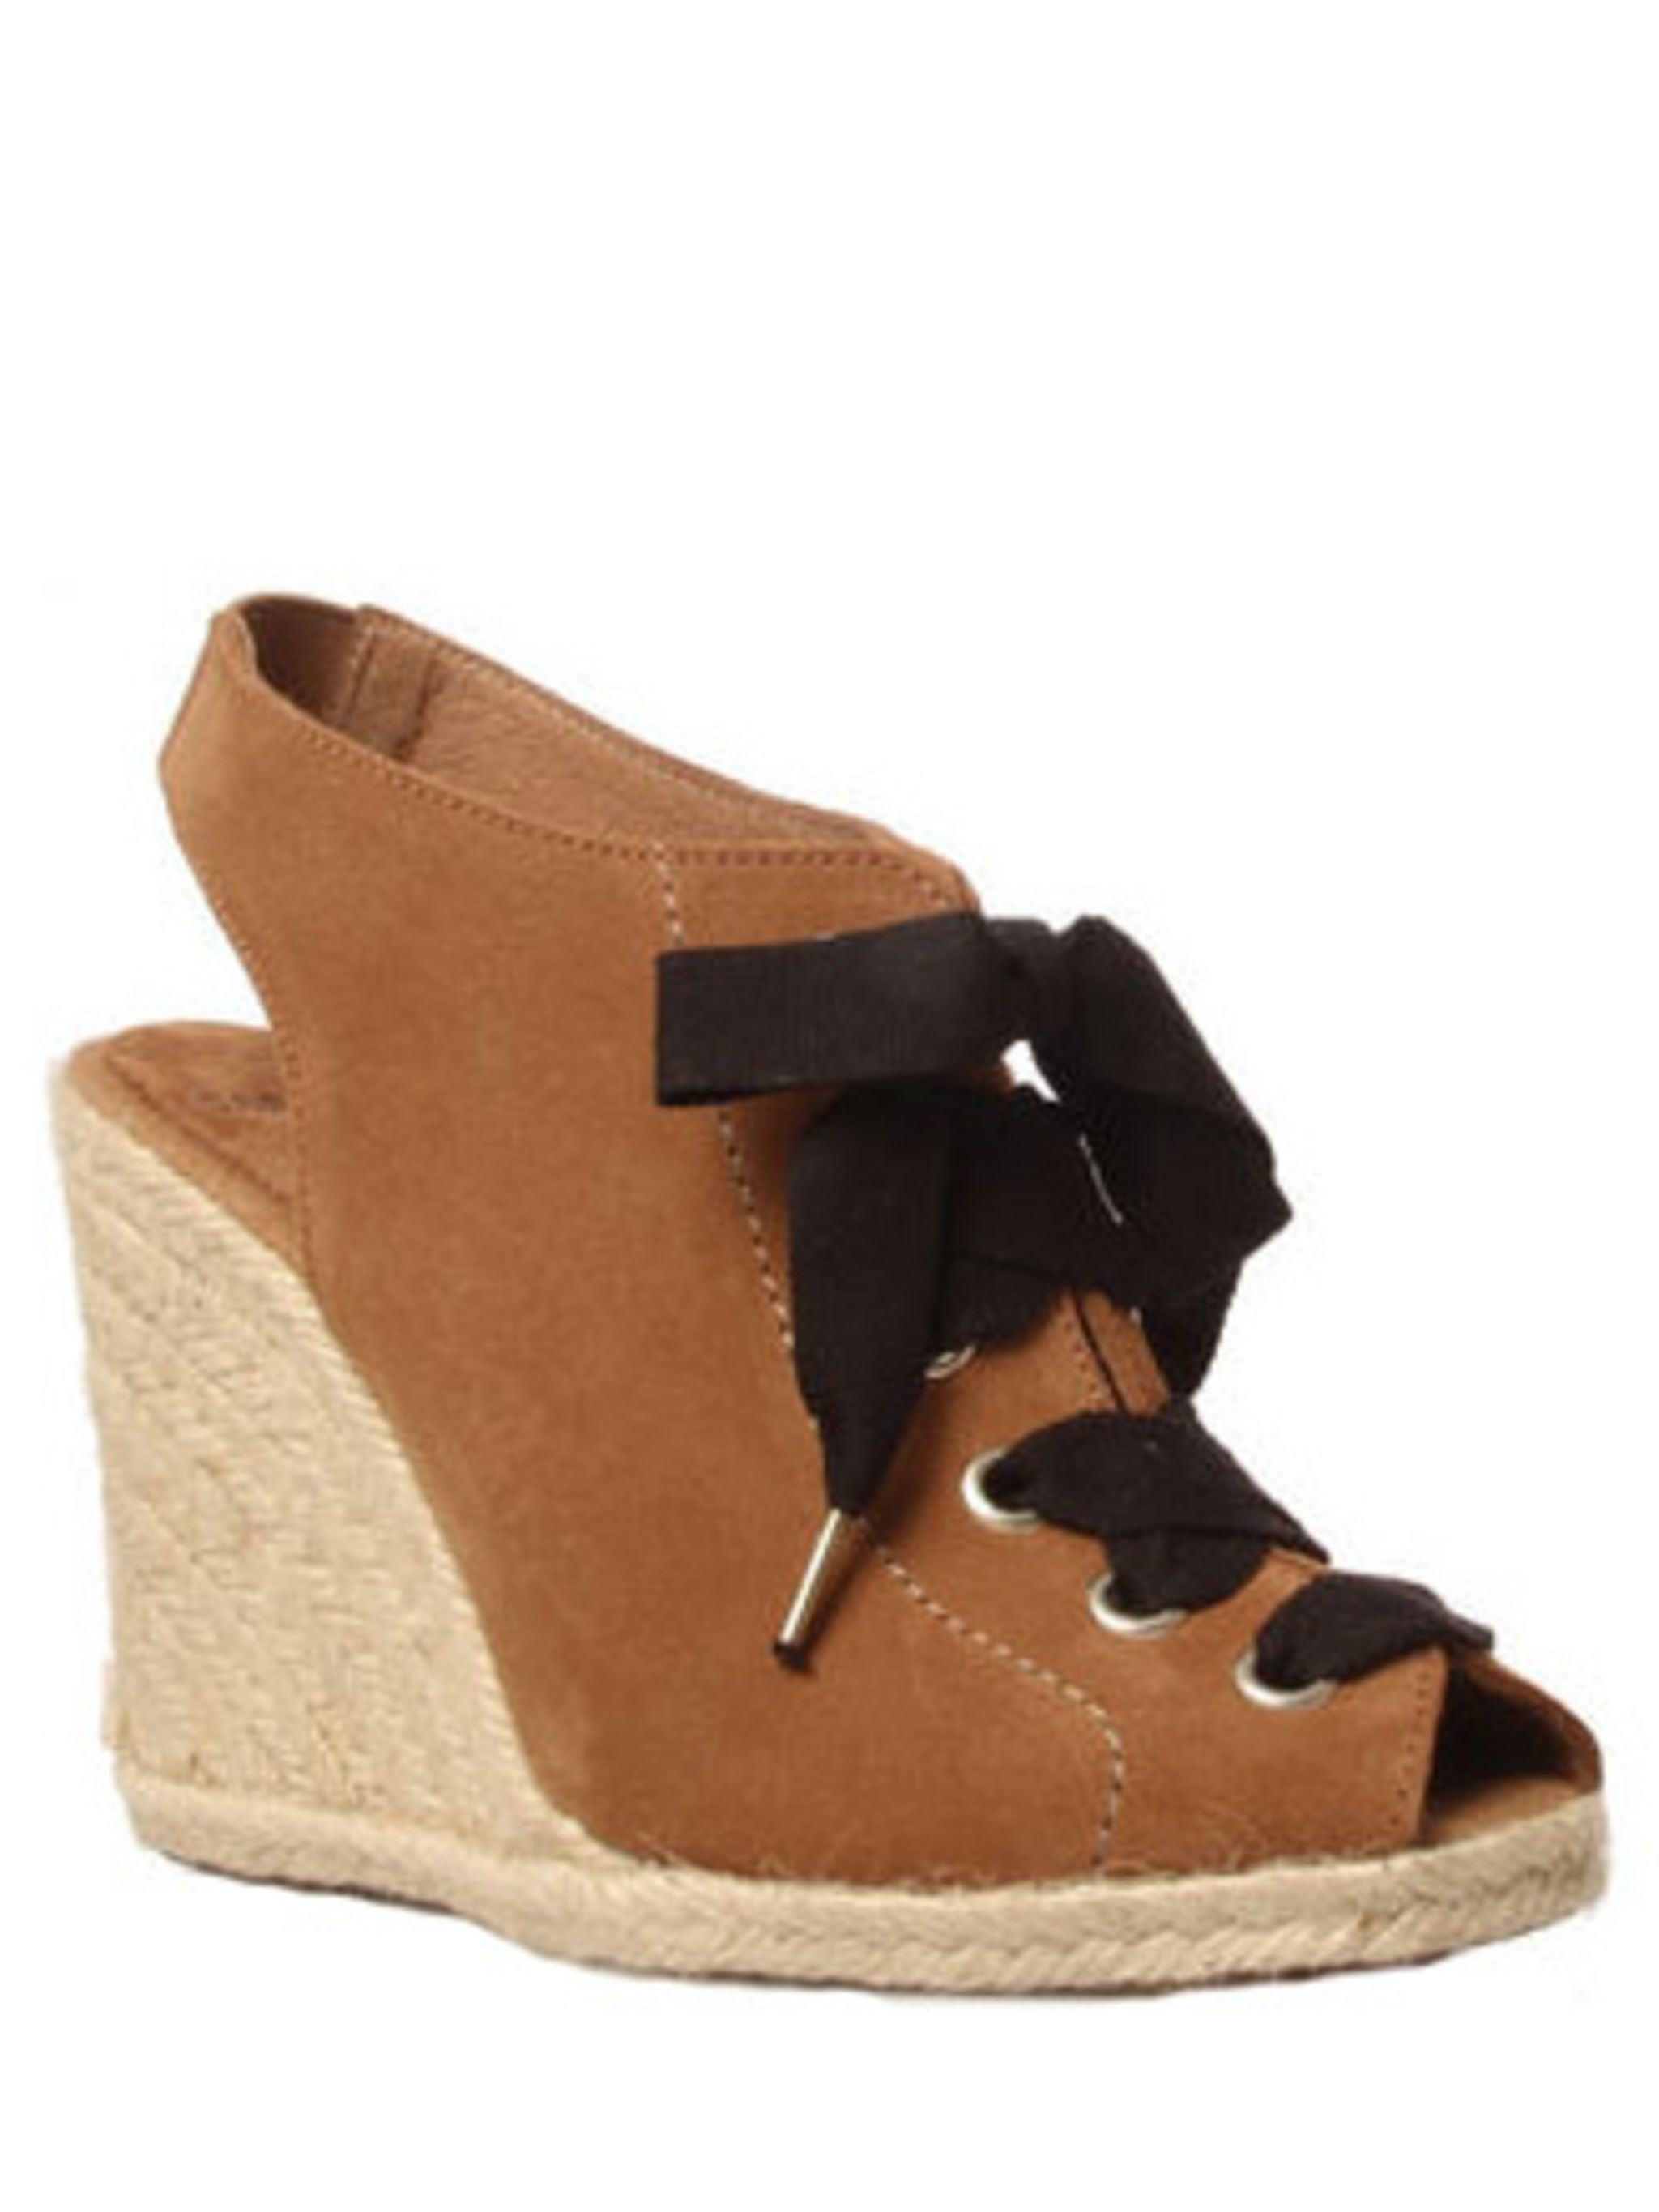 <p>These wedges will look perfect paired with the J.Crew shirt at weekends but are smart enough for the office too. </p><p>Wedges, £95 by Carvela</p>